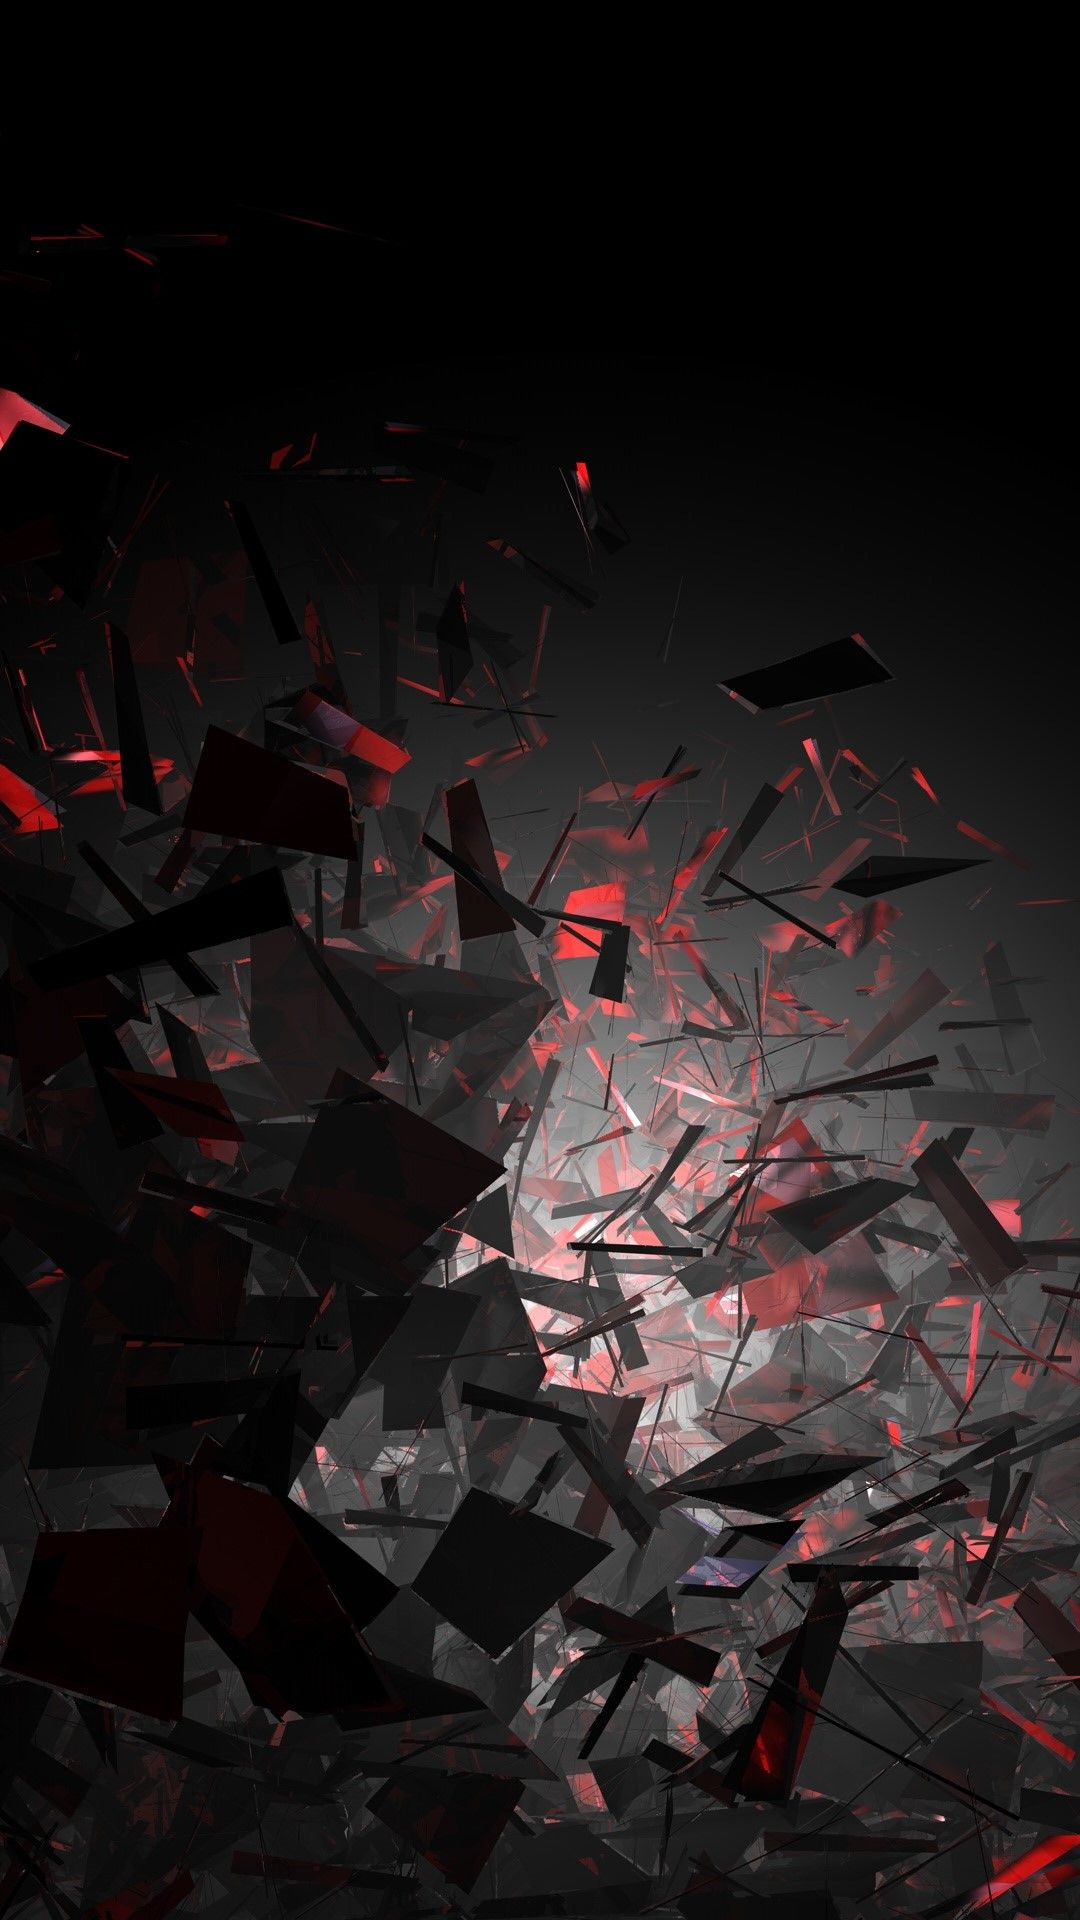 Broken Pieces Tap To See More Cool 3d Abstract Iphone Wallpapers